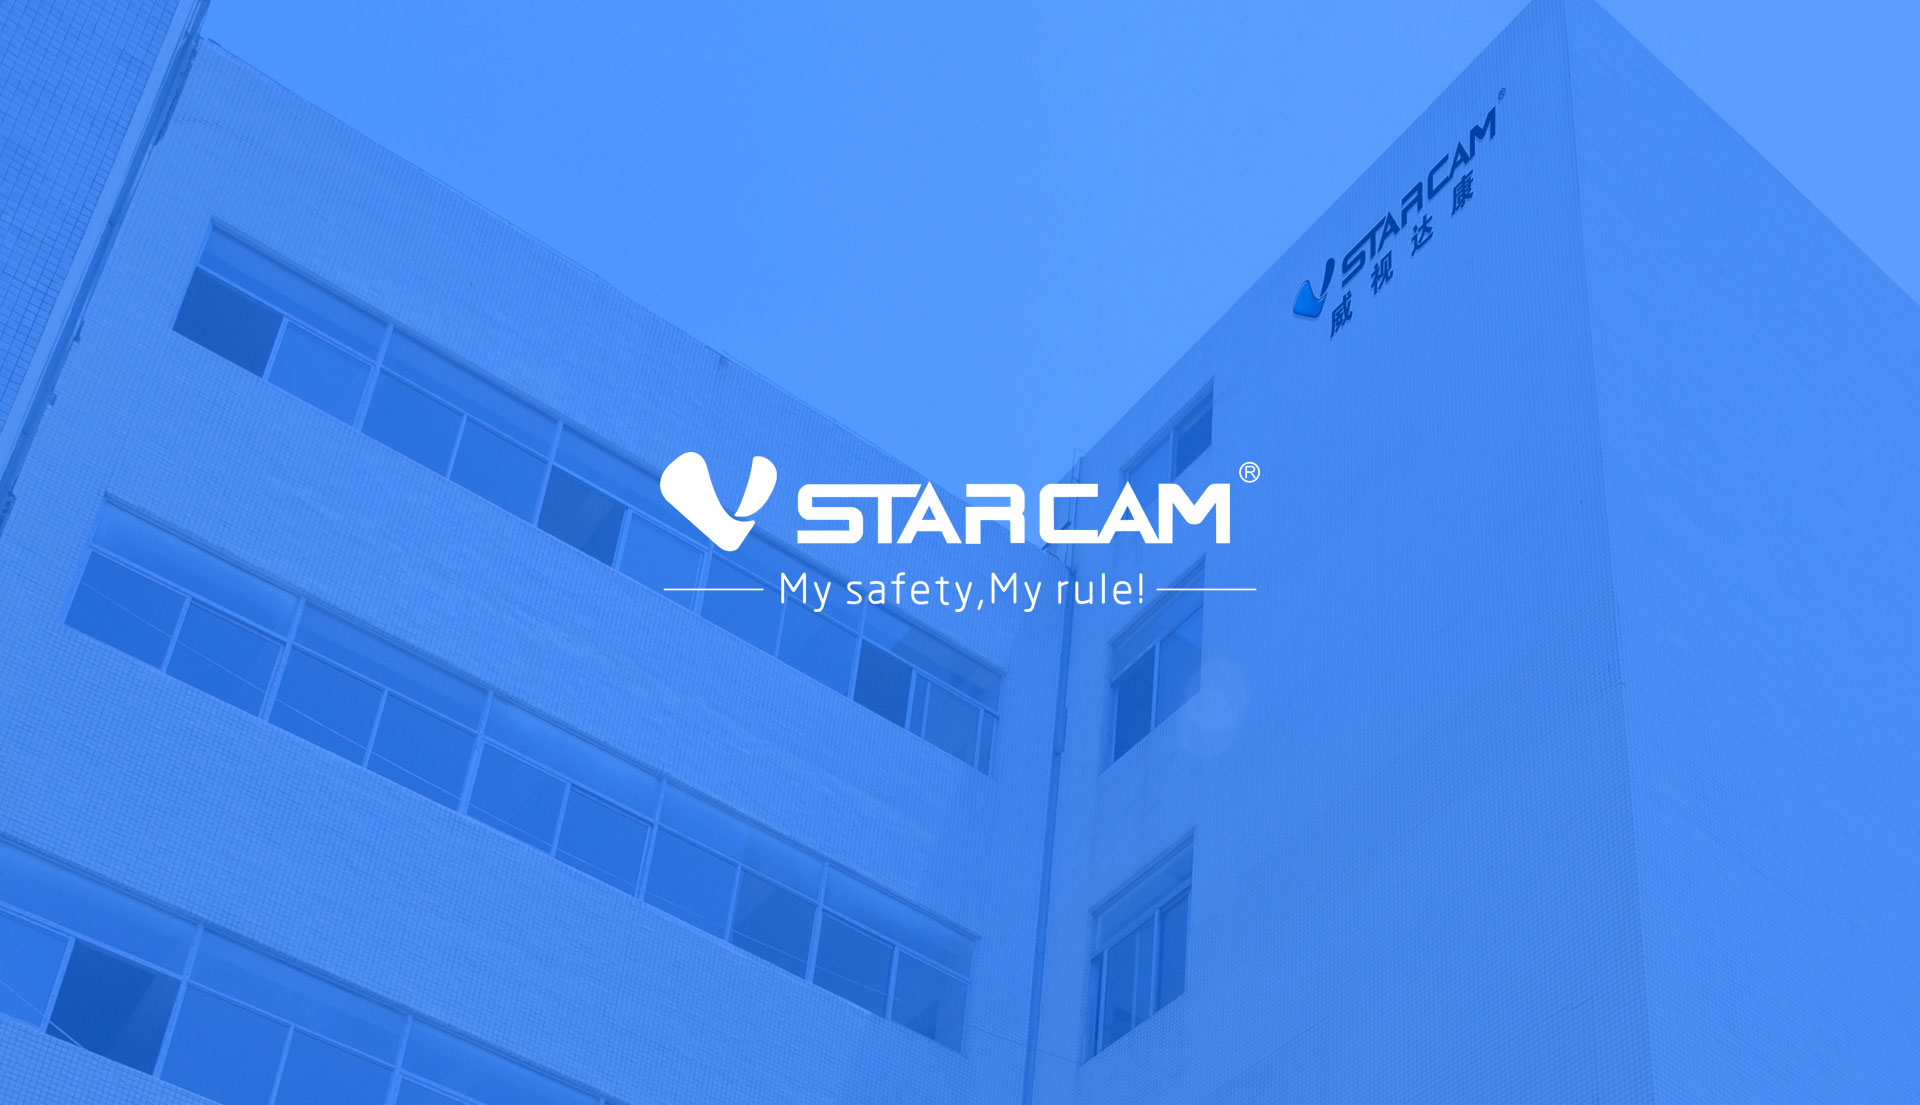 vstarcam ip camera factory